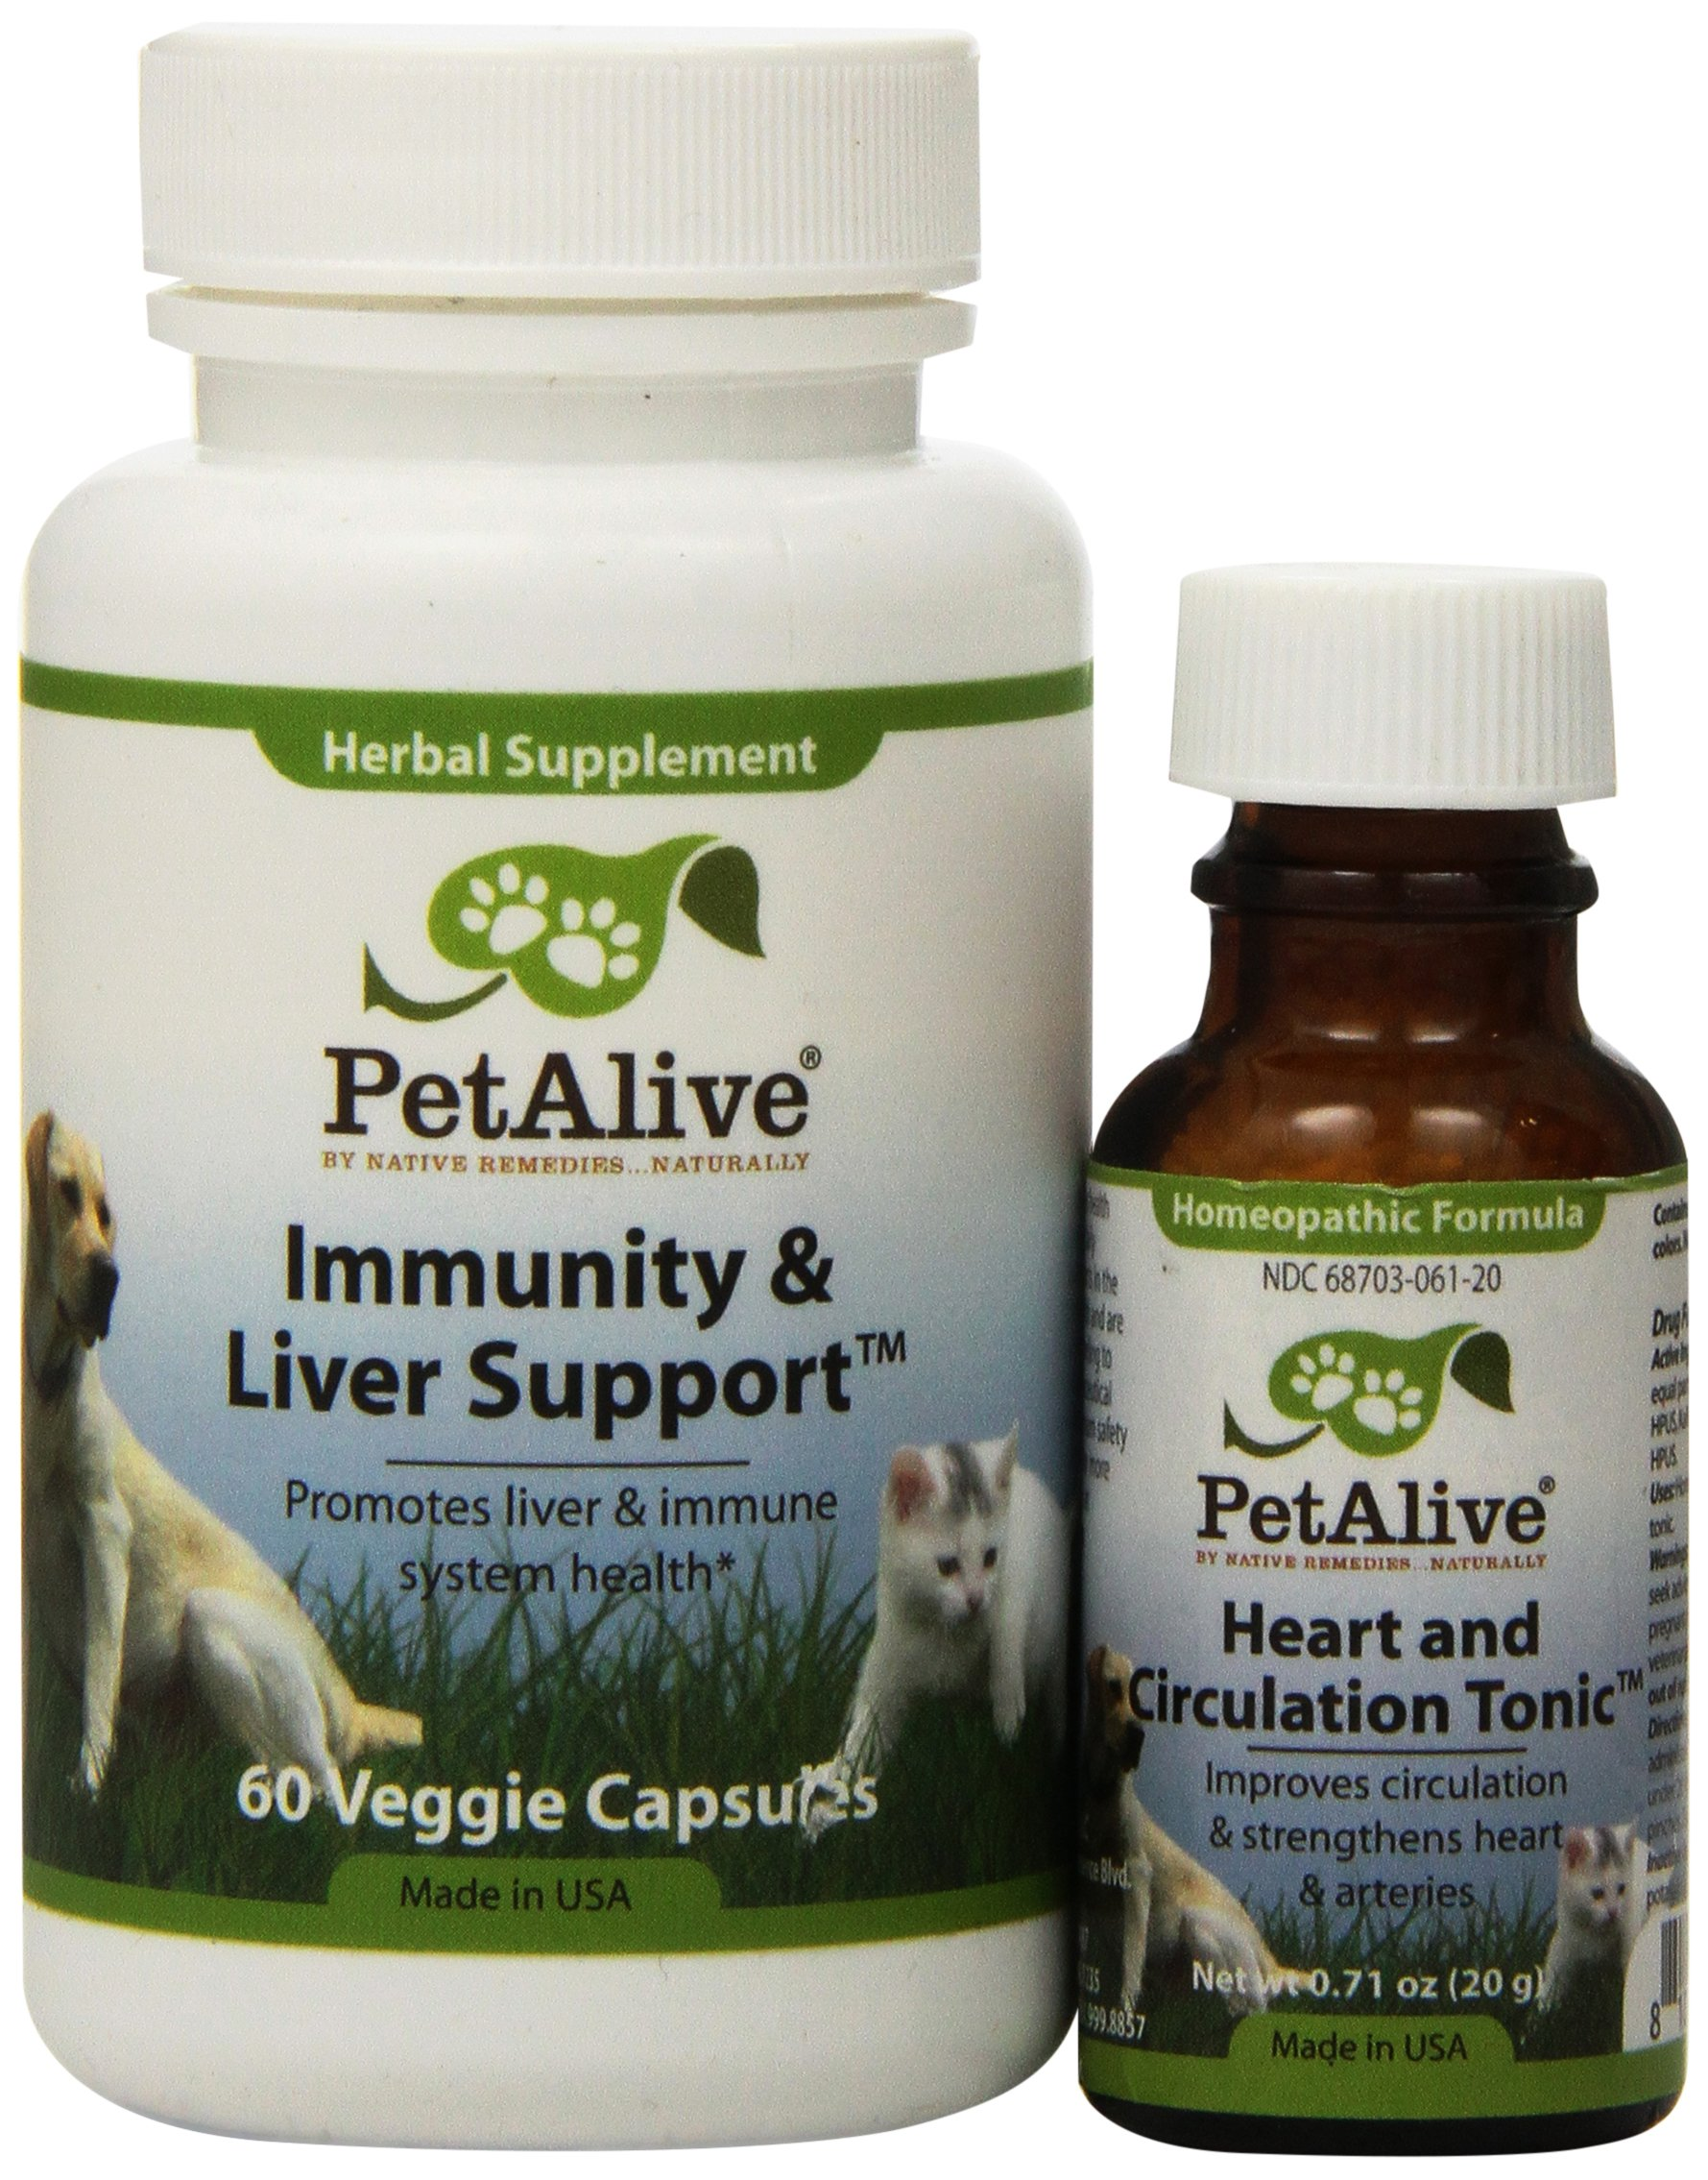 PetAlive Heart & Circulation Tonic and Immunity & Liver Support ComboPack